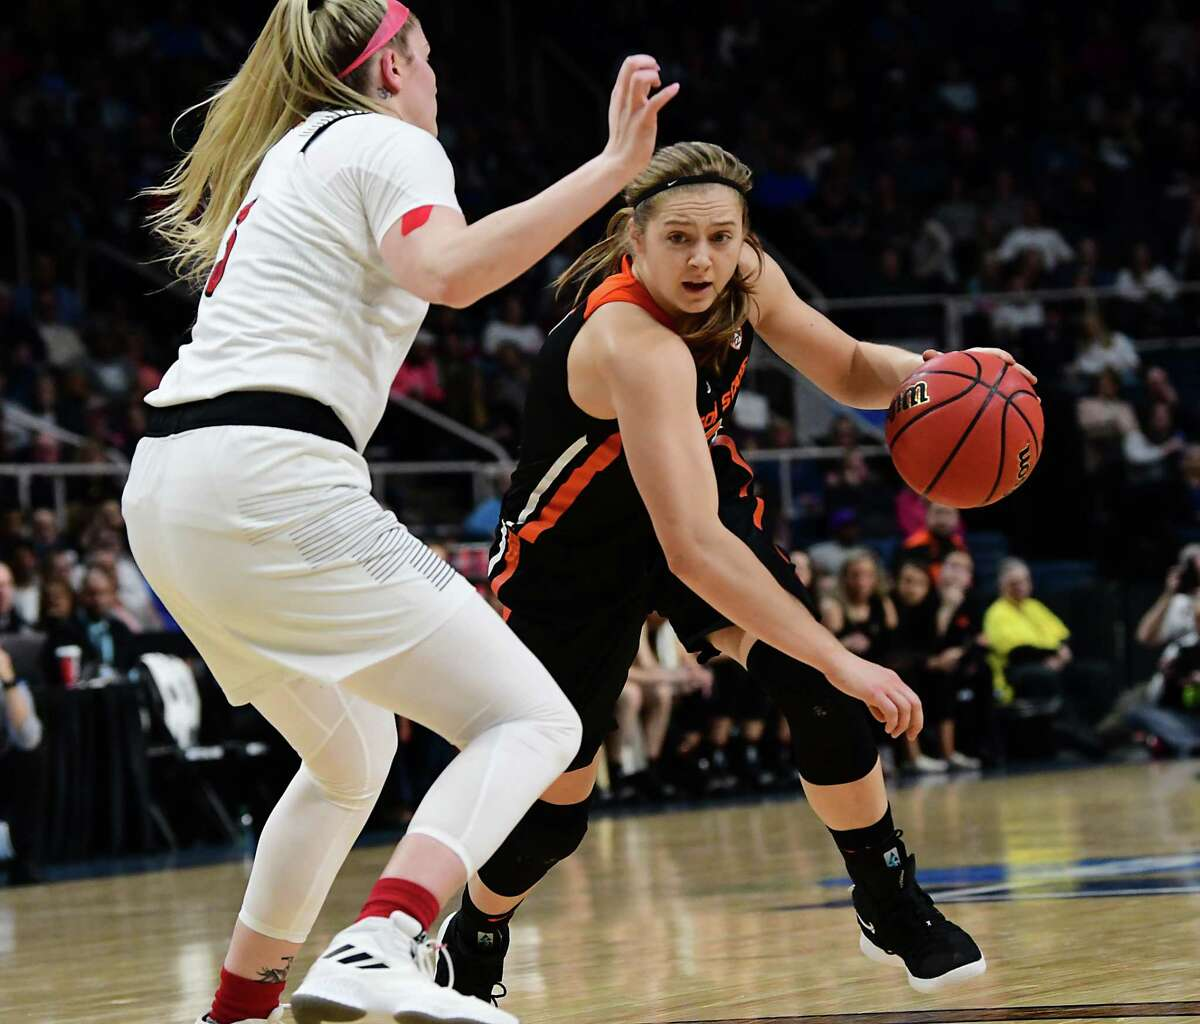 Oregon State's Mikayla Pivec drives to the net against Louisville's Sam Fuehring in a semifinal for the Albany Regional of the NCAA Women's Basketball Championship at the Times Union Center on Friday, March 29, 2019 in Albany, N.Y. (Lori Van Buren/Times Union)